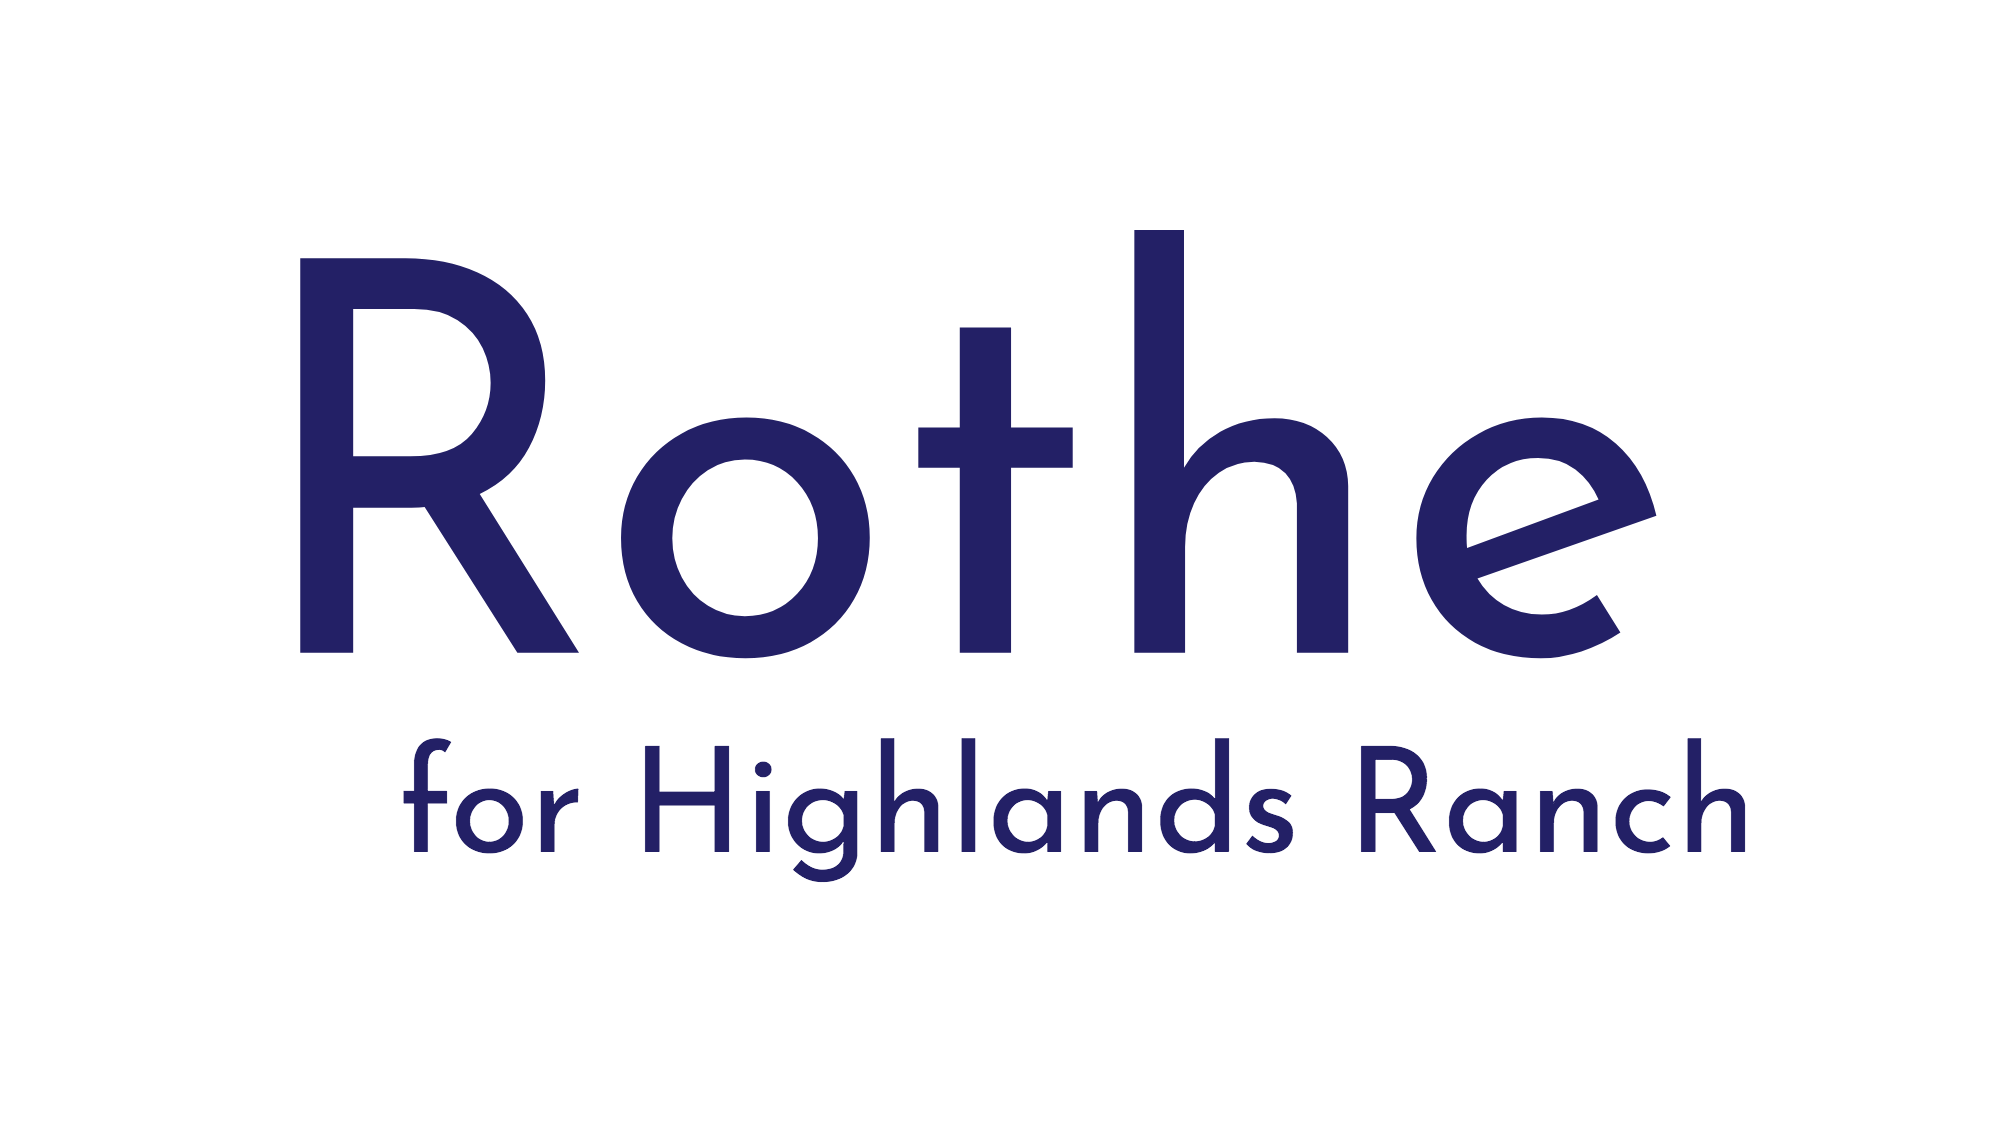 Rothe-logo (5).png